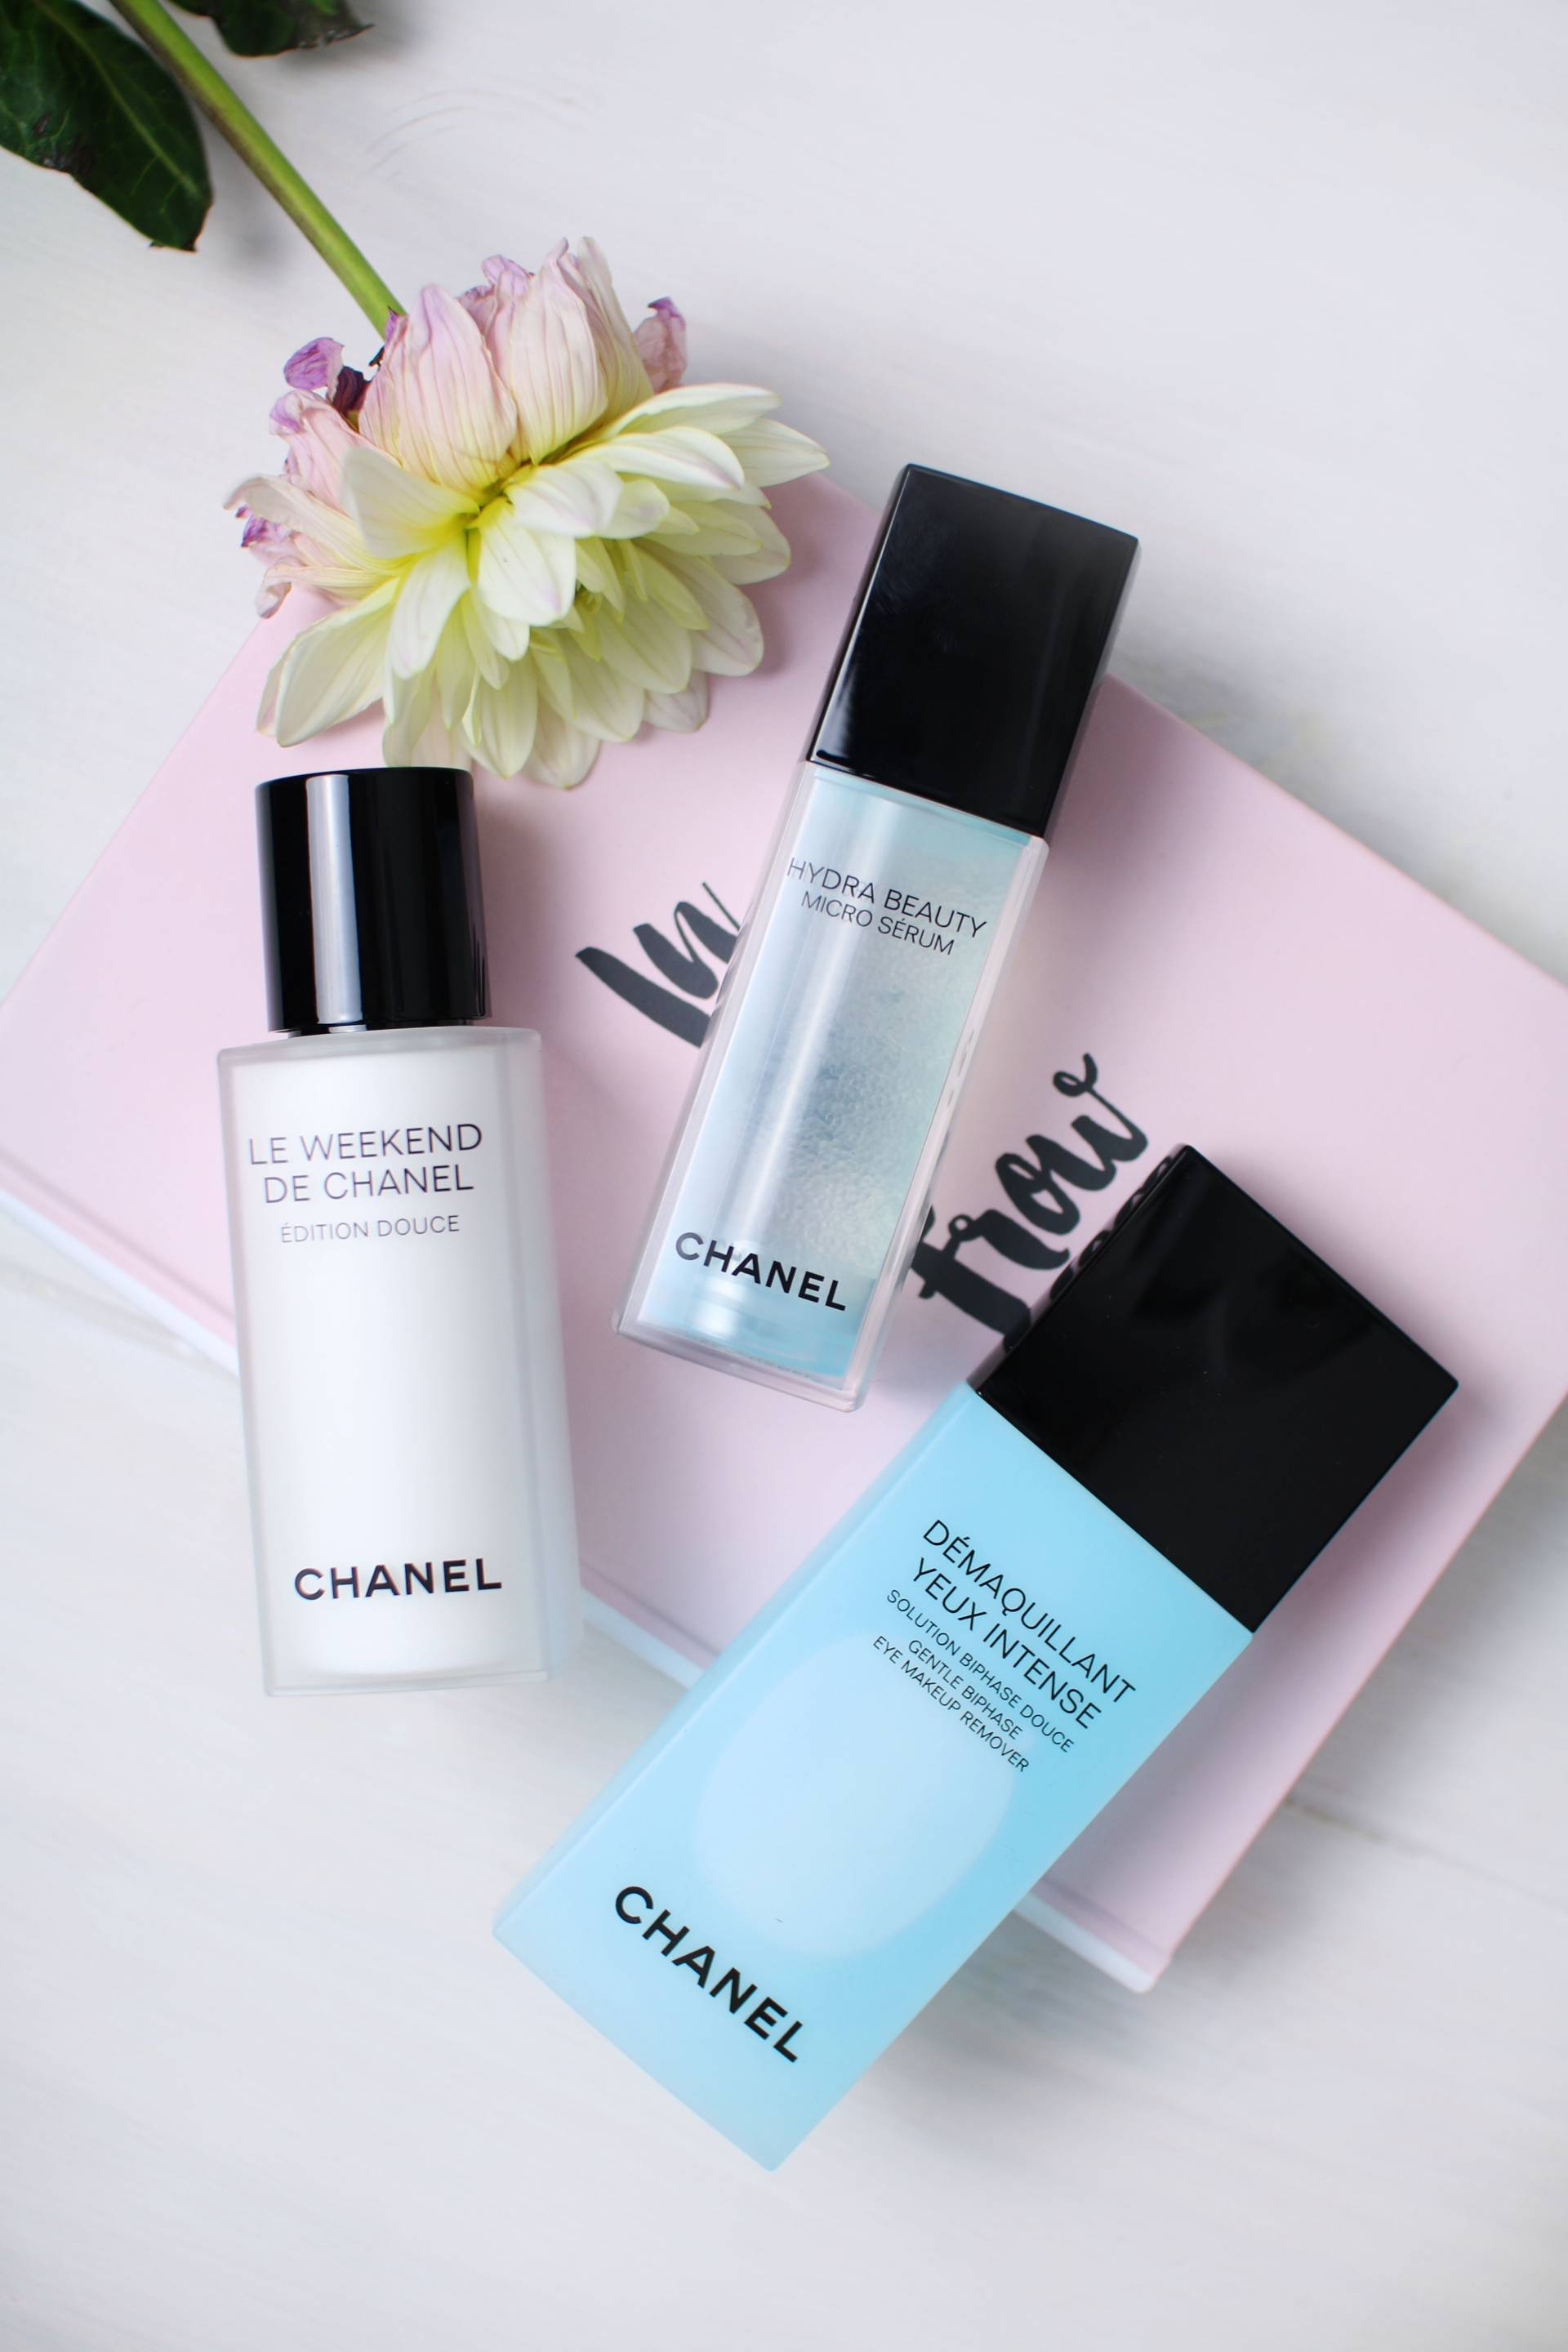 Chanel Skincare for the Weekend - Inthefrow